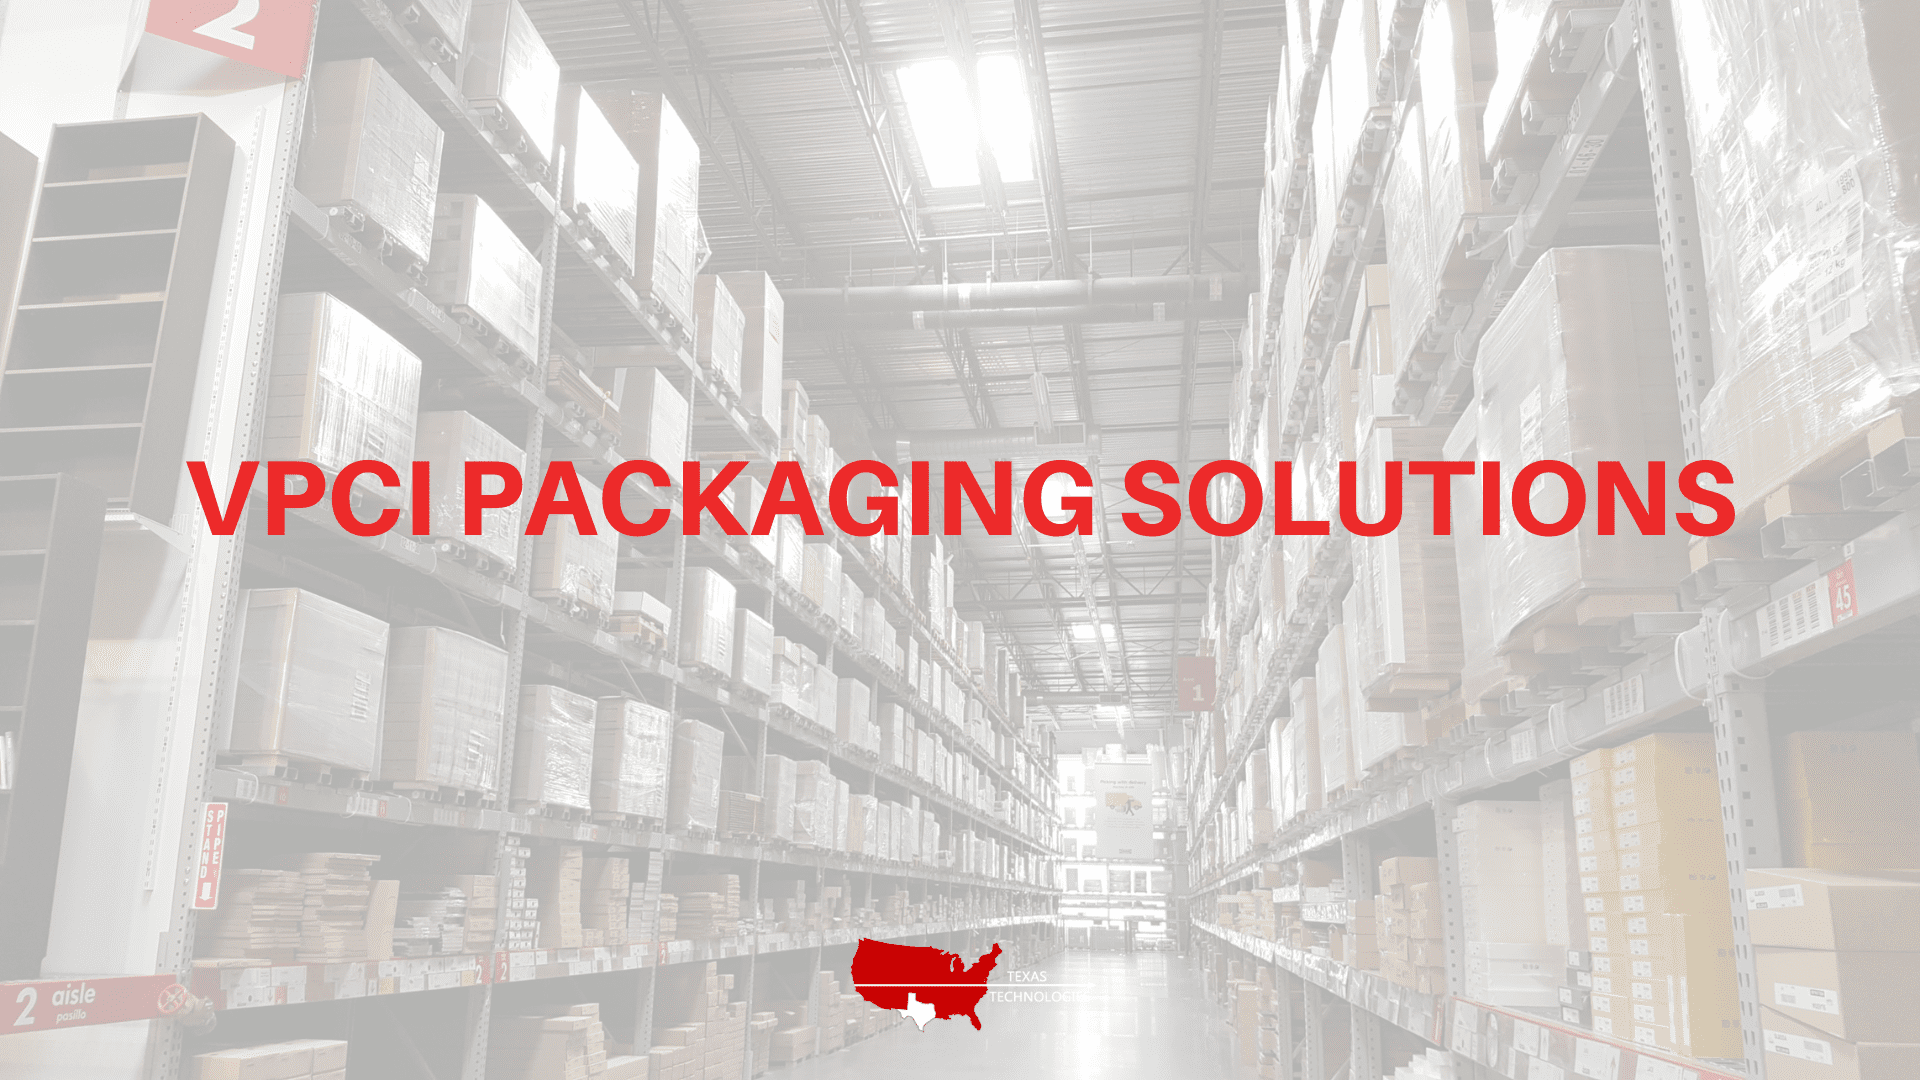 VpCI Packaging Solutions